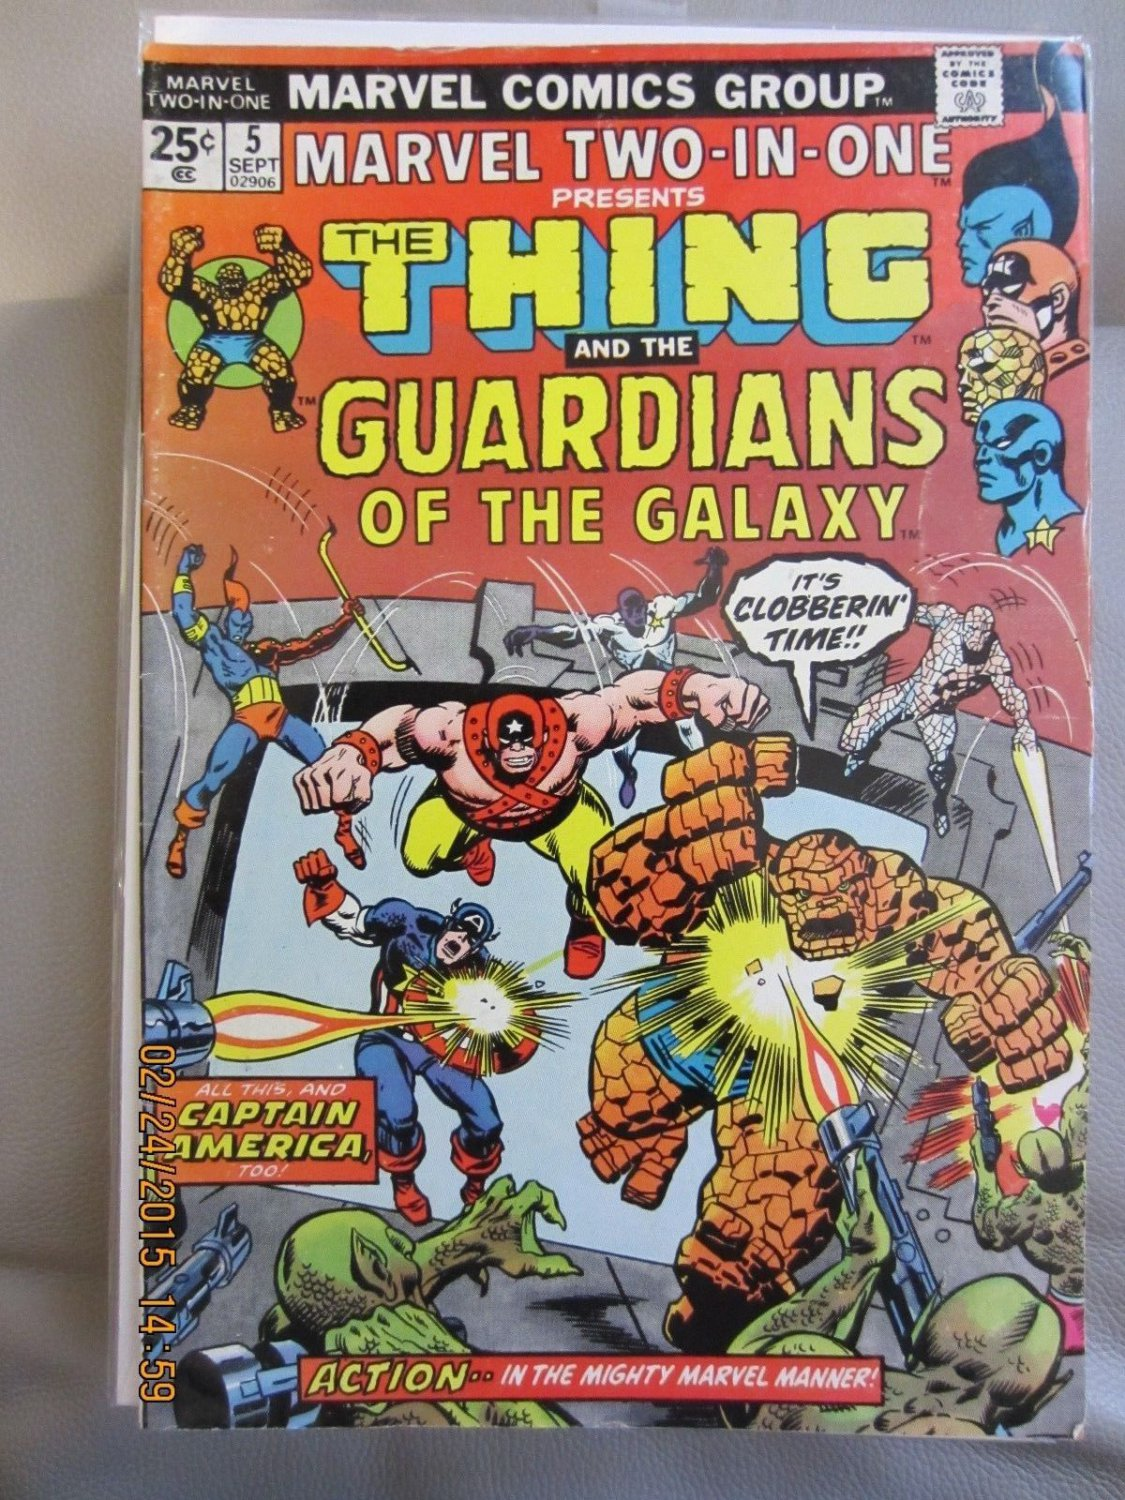 Marvel Two-In-One #5 Guardians of the Galaxy!!